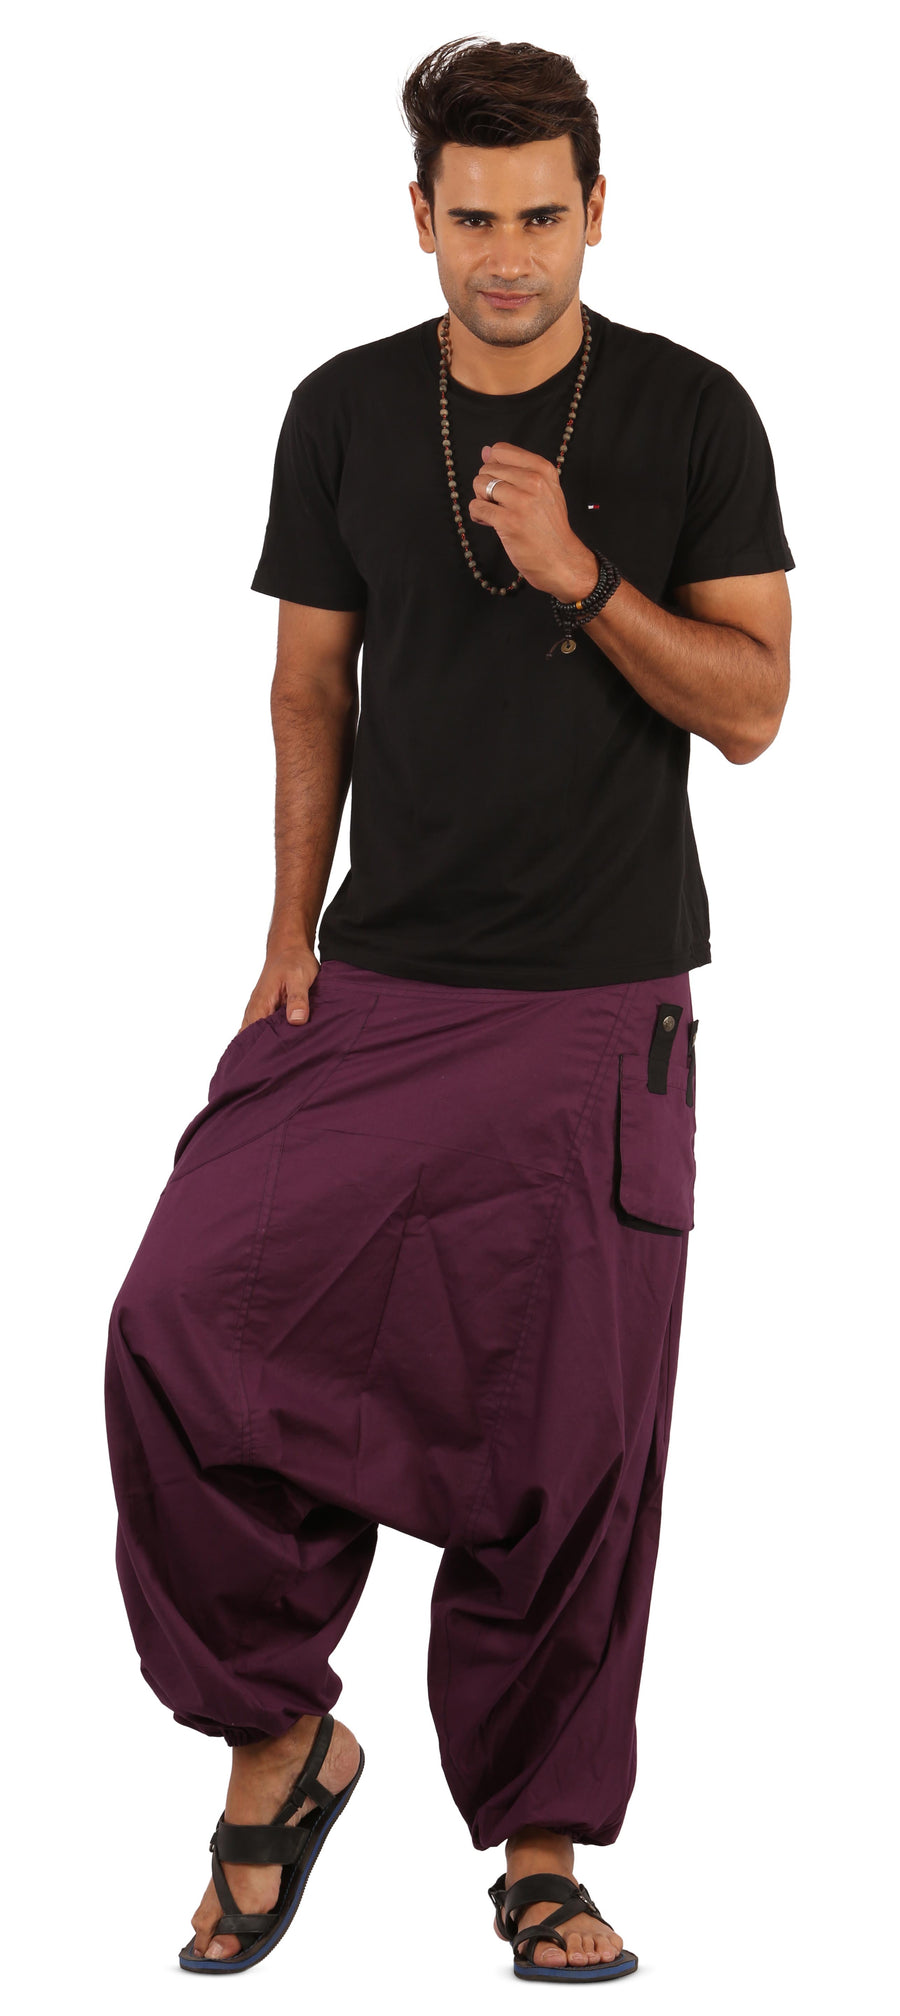 Harem Pants, Dark Purple Harem Pants, Show me some Mens Harem Pants, Show me some Womens Harem Pants, What is a harem pant, Show me some baggy pants, I want to buy harem pants, cool harem pants, Wide leg harem Pants, Cheap Harem Pants, Show me best harem pants, Highly rated Harem Pants